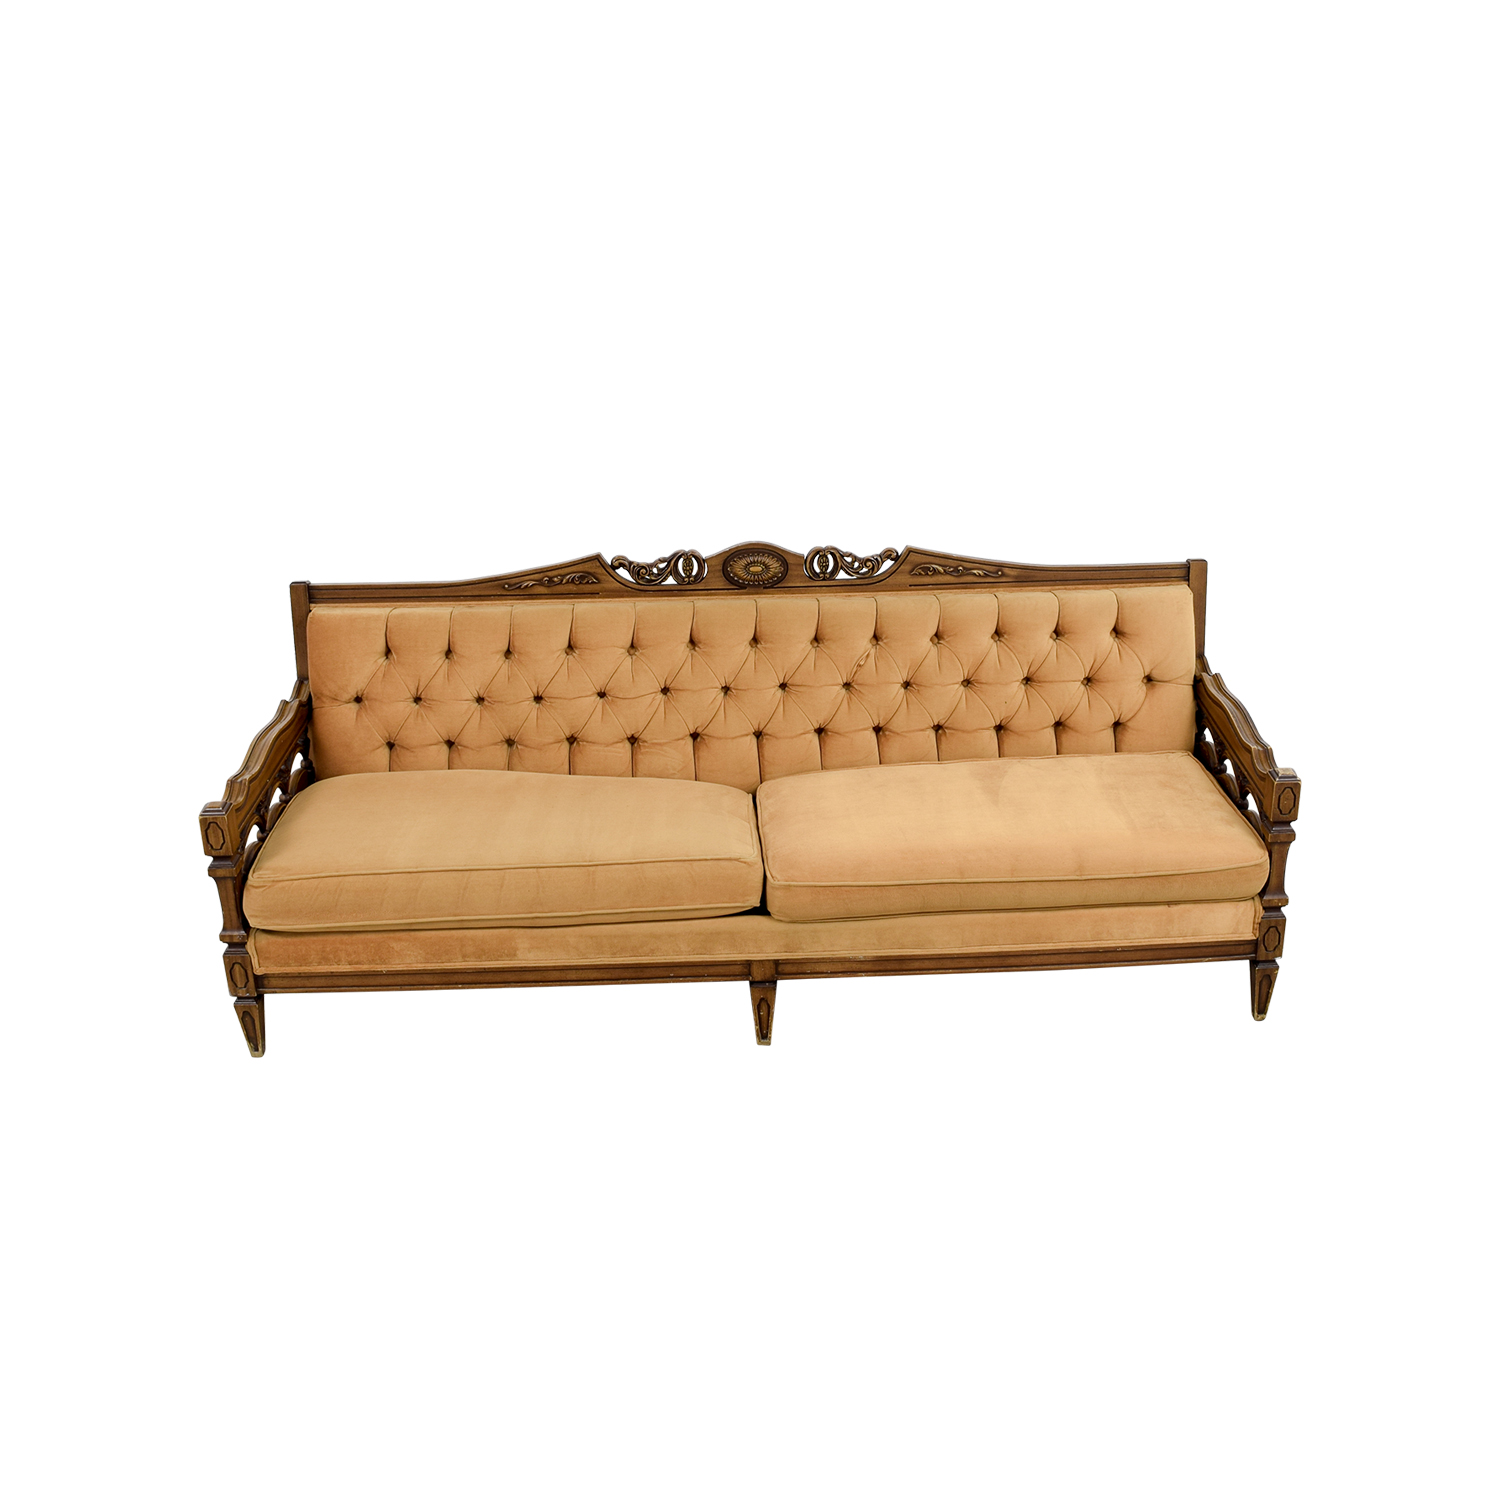 shop Vintage Tufted Beige Sofa